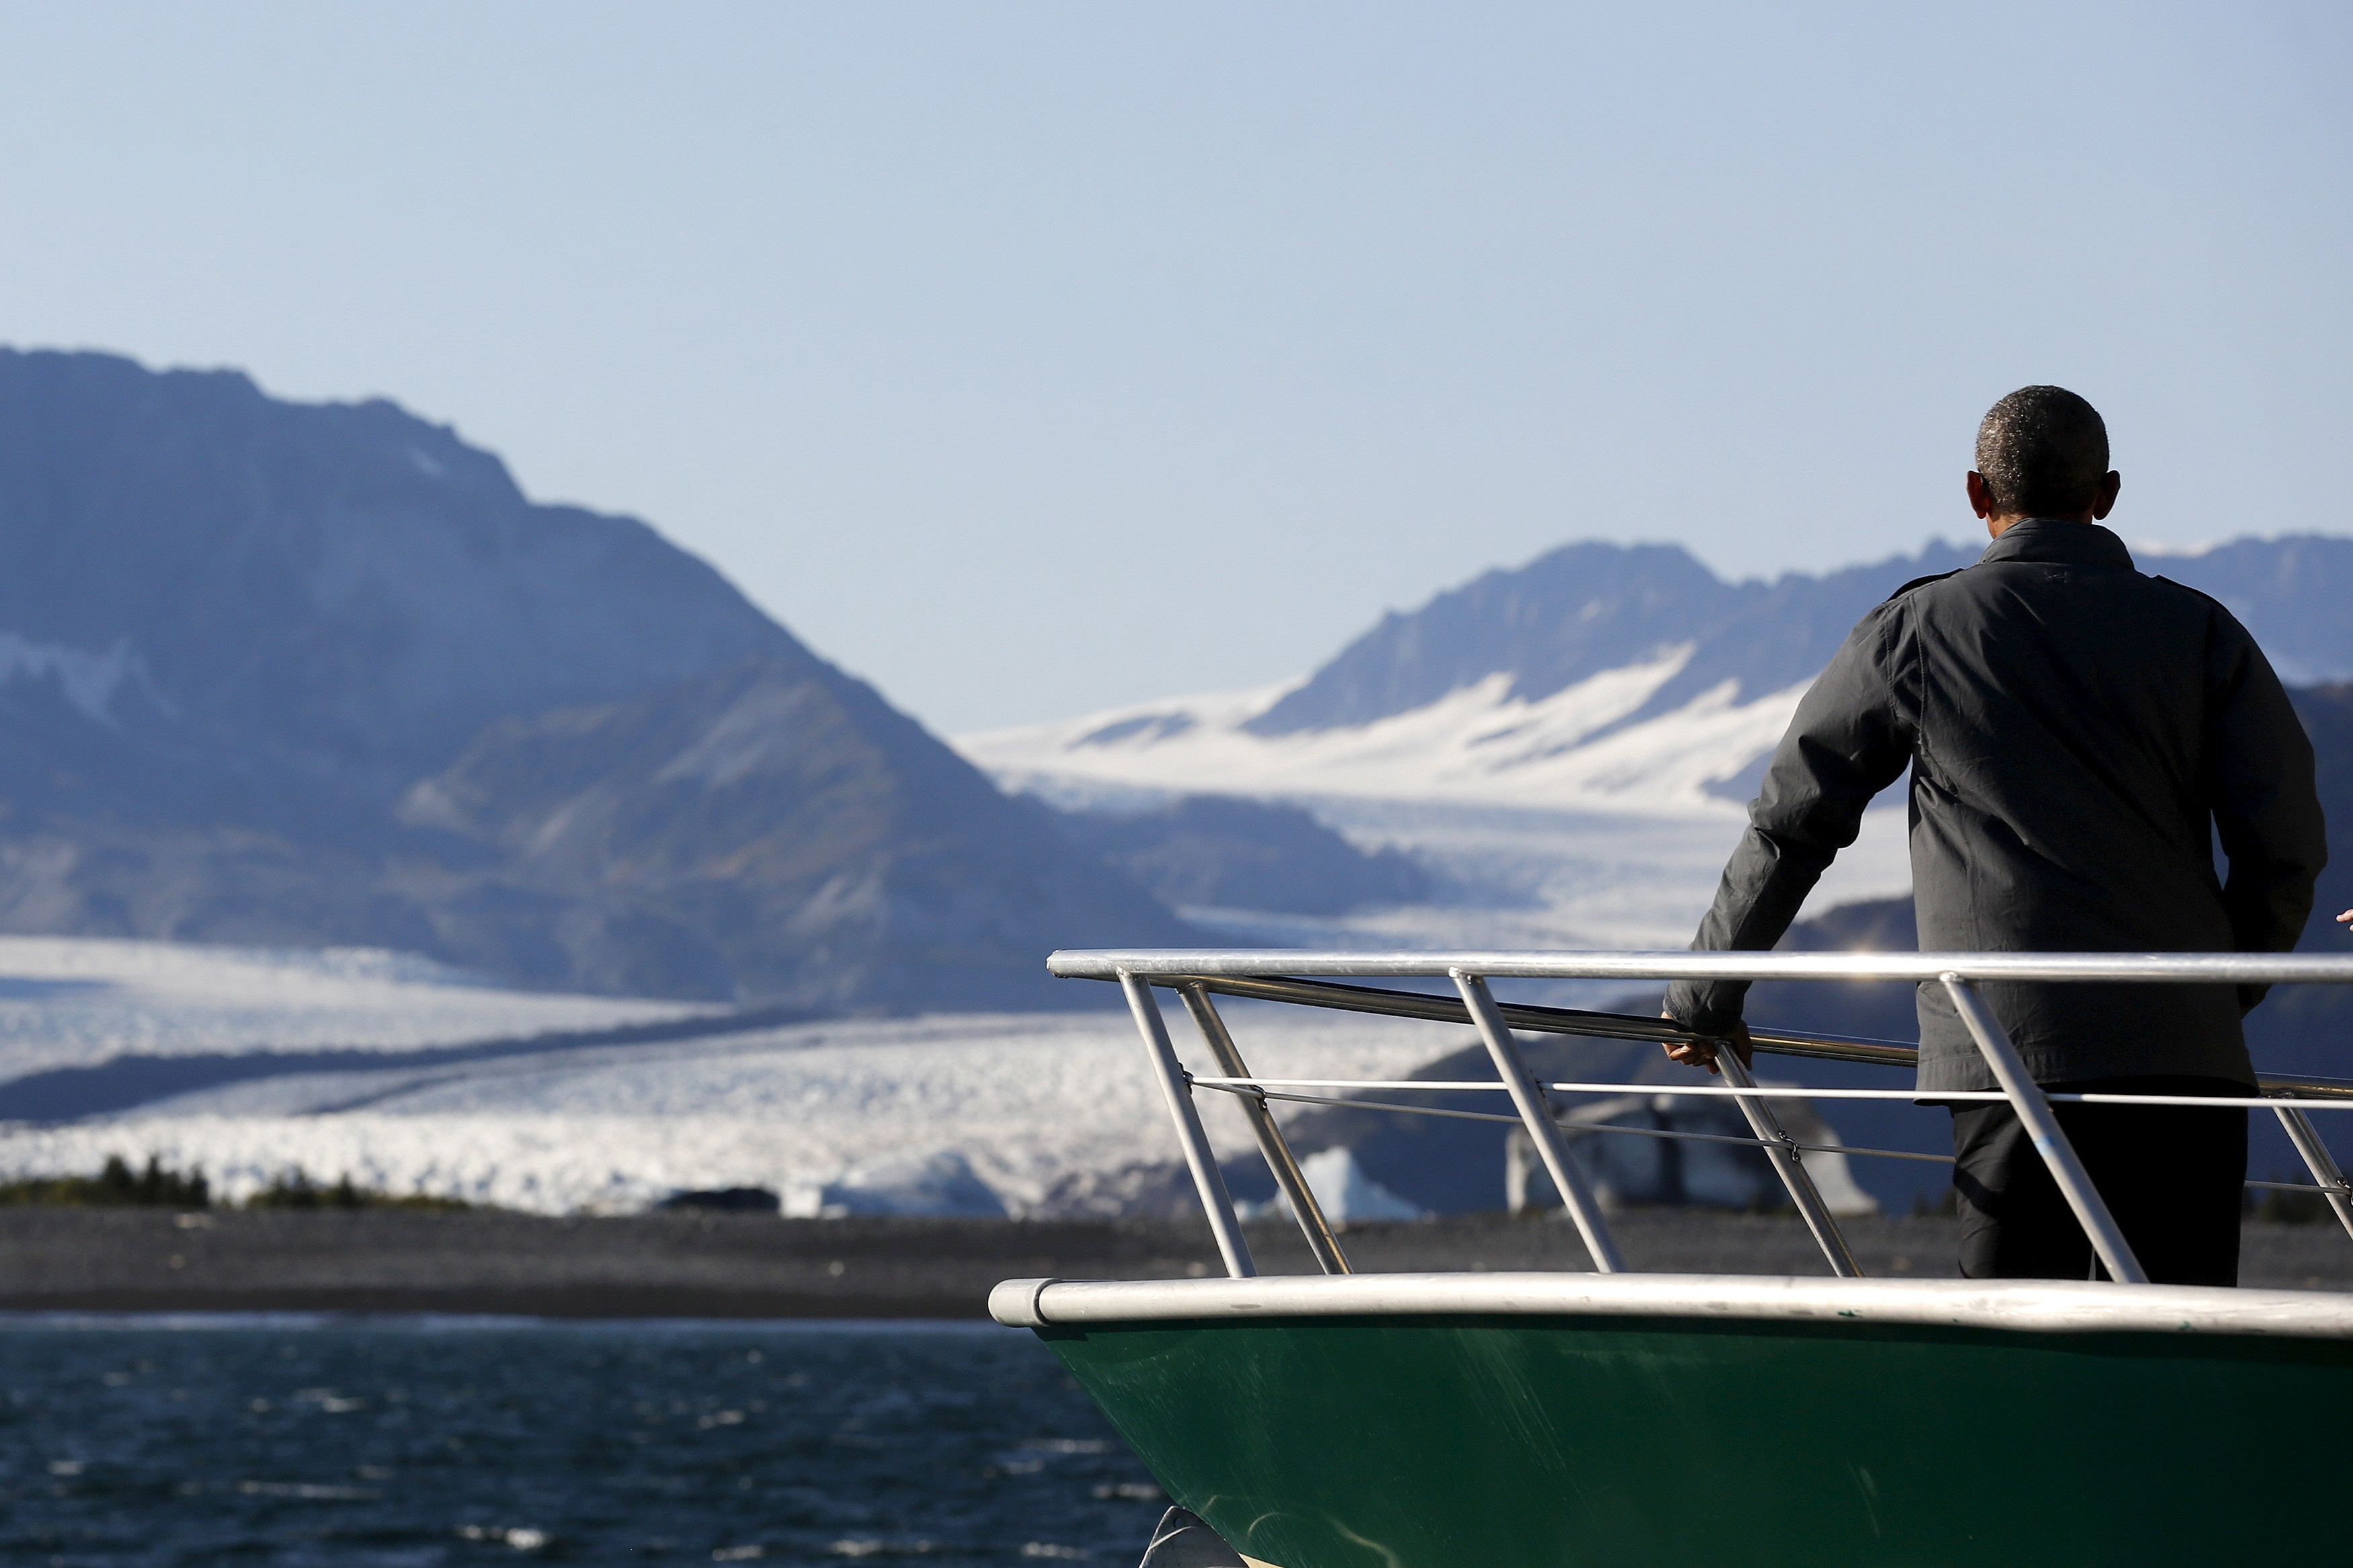 U.S. President Barack Obama views Bear Glacier on a boat tour of Kenai Fjords National Park in Seward, Alaska September 1, 2015. During a three-day visit Obama is also slated to meet people in remote Arctic communities whose way of life is affected by rising ocean levels, creating images designed to build support for regulations to curb carbon emissions. REUTERS/Jonathan Ernst - RTX1QODE